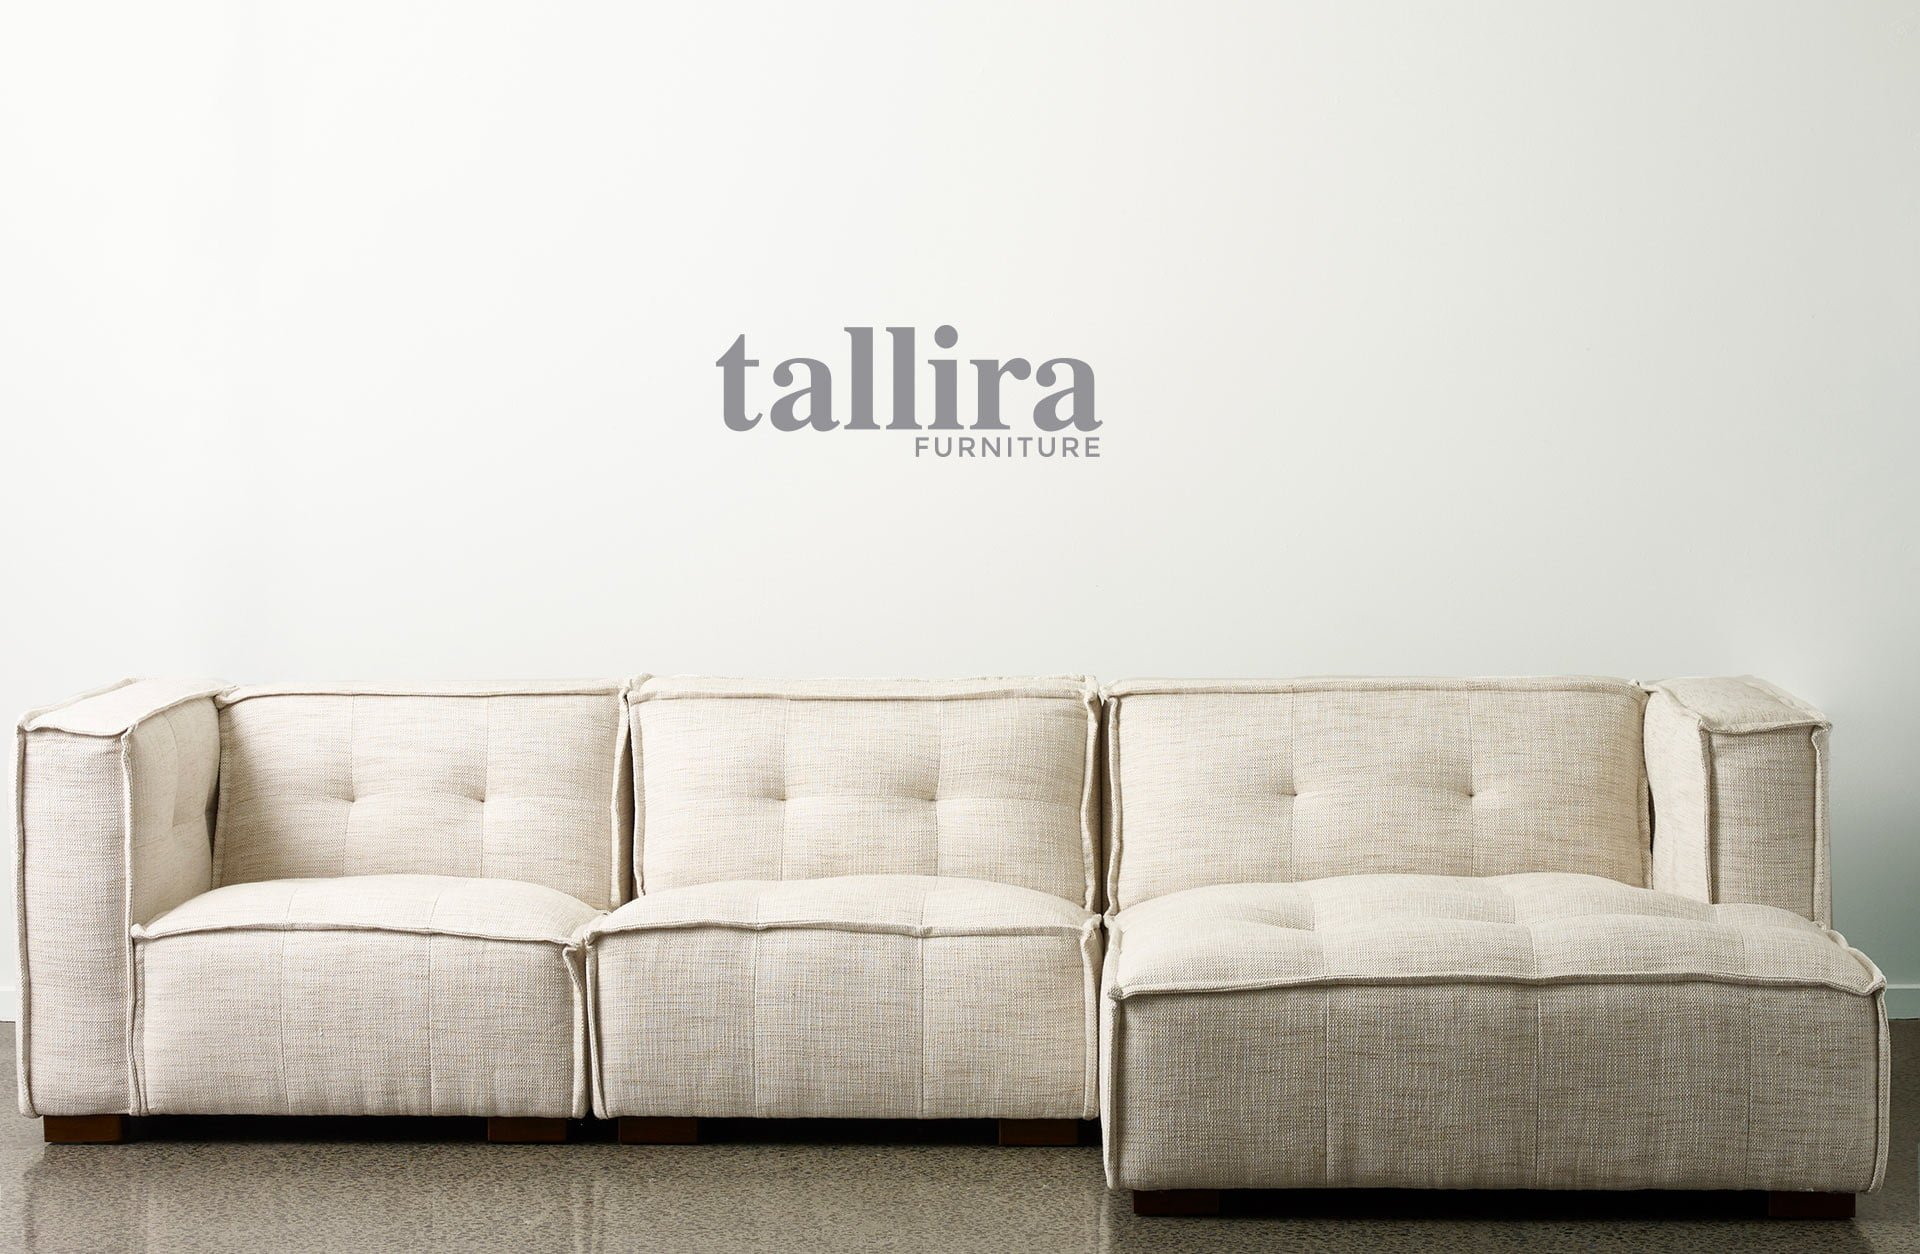 Tallira furniture by the rug collection Sienna Sofa in Natual colour